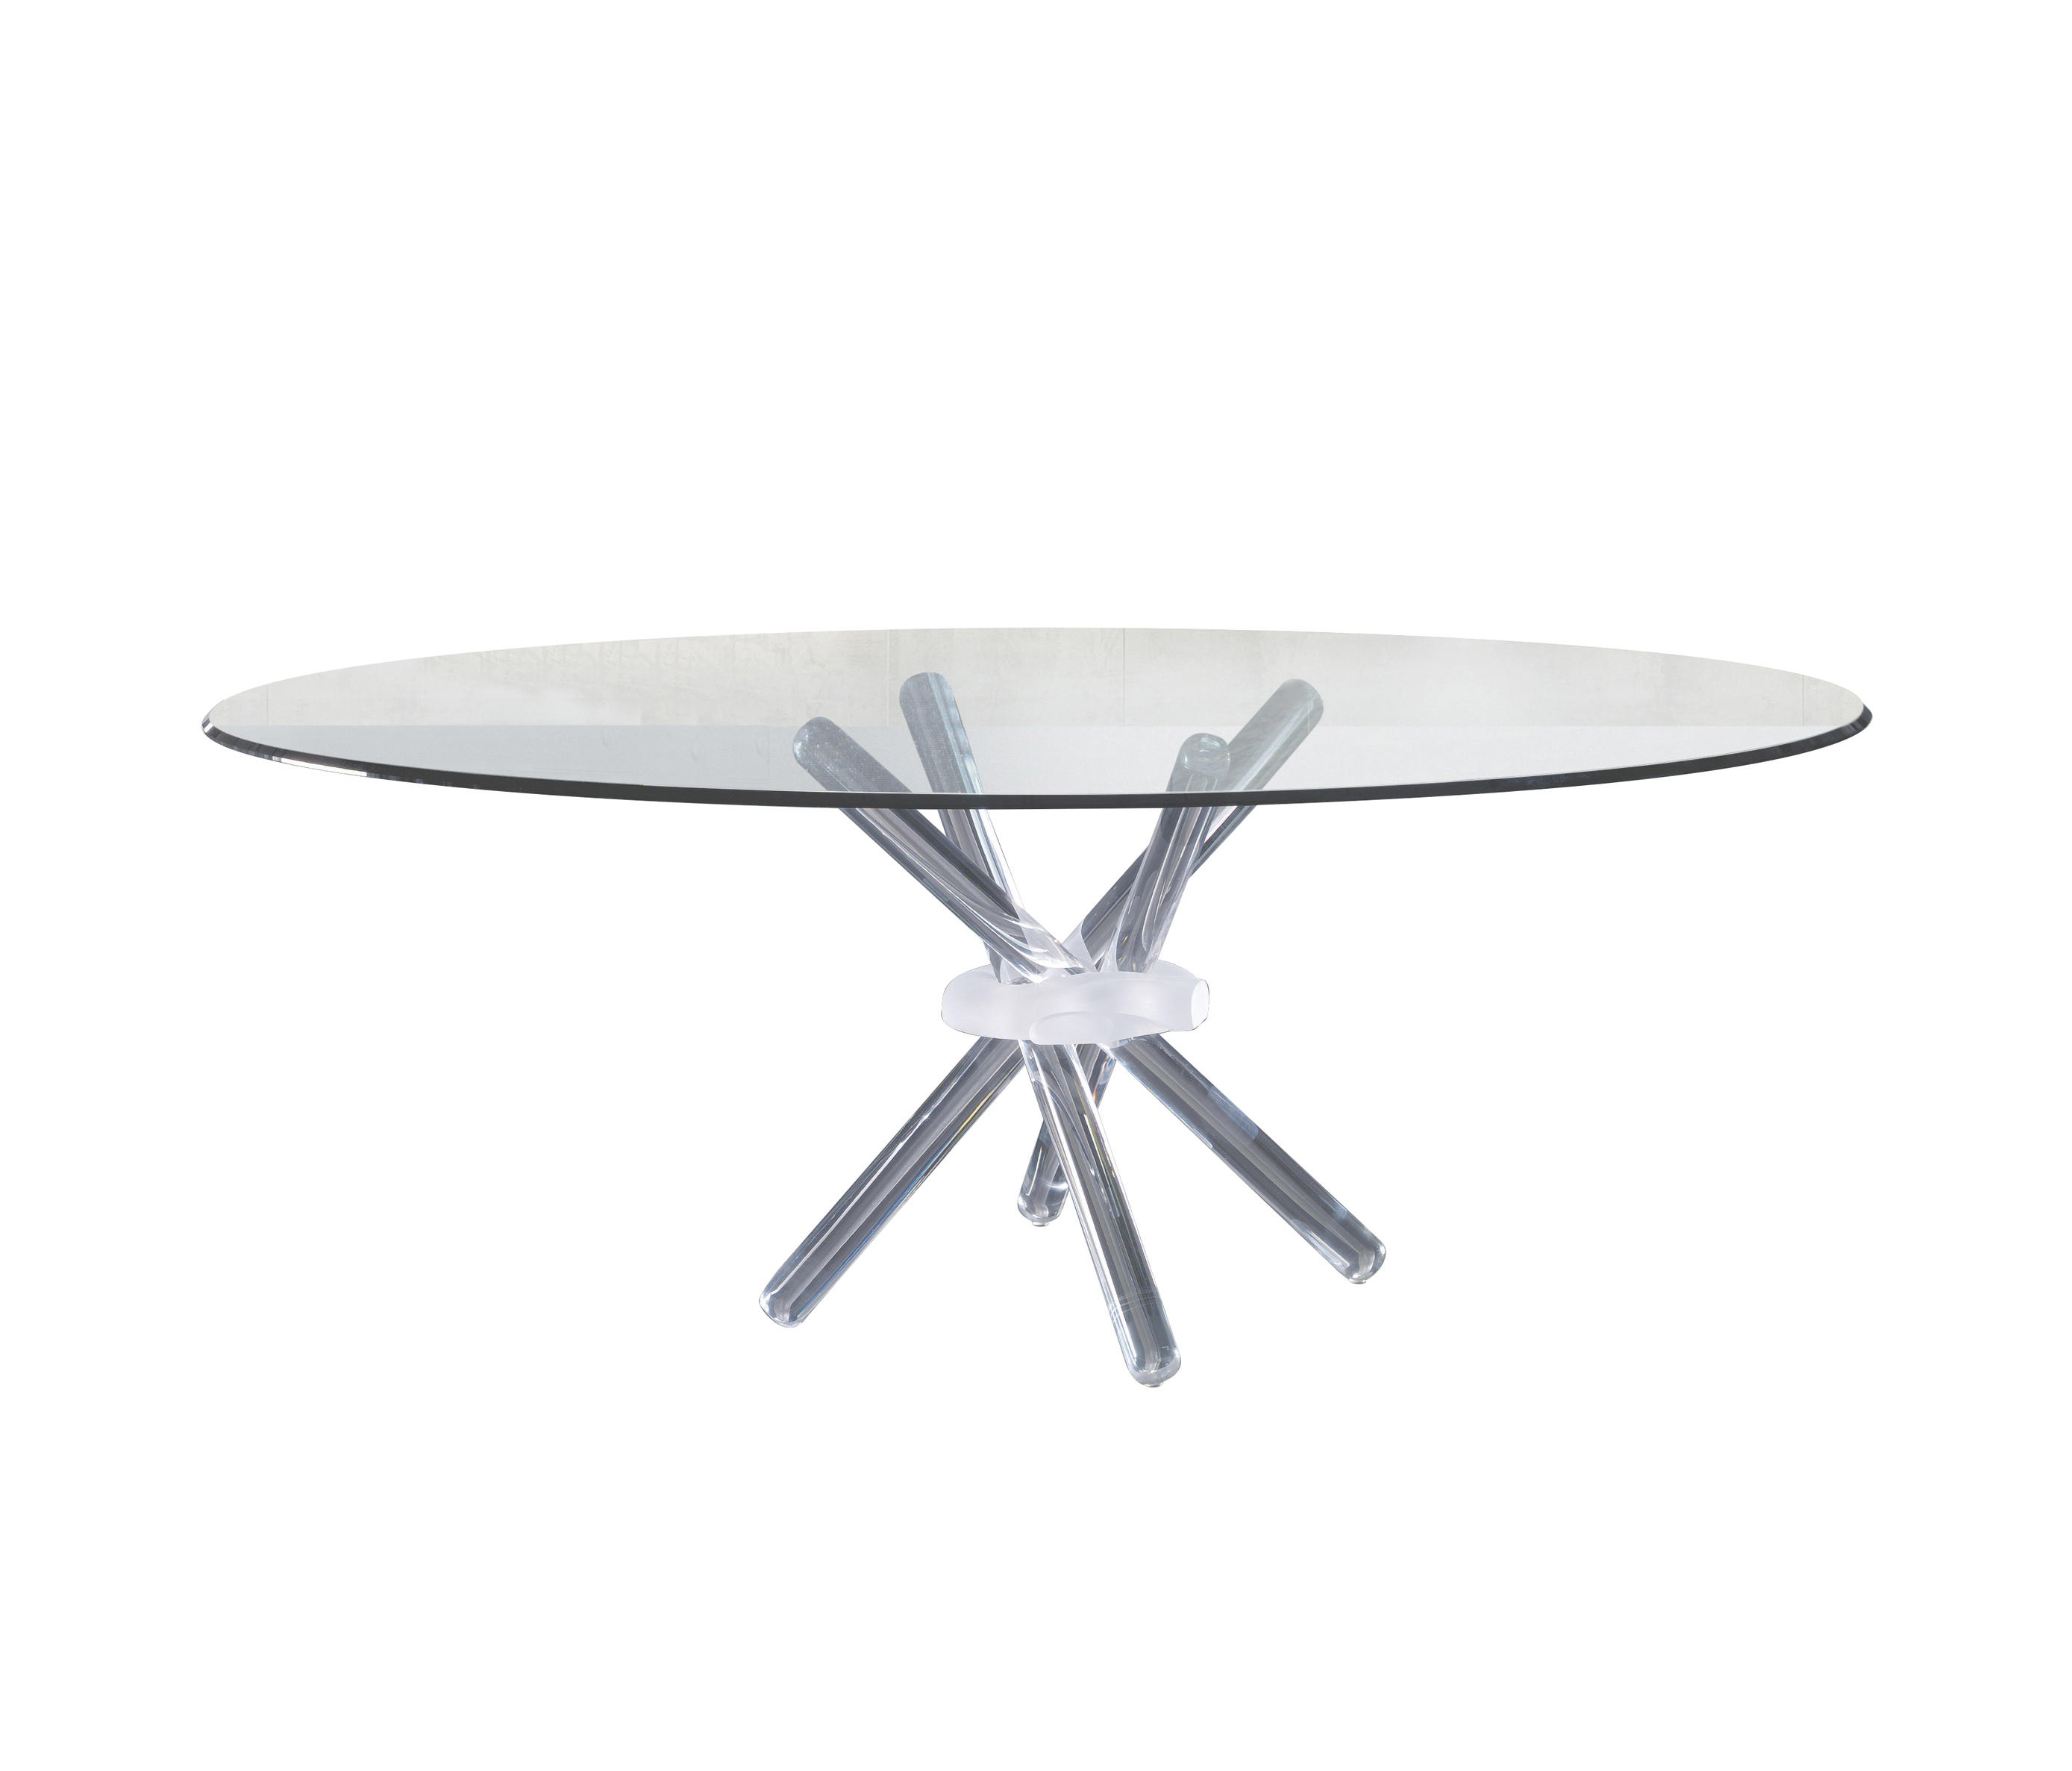 Arlequin 72 tables de repas de reflex architonic for Reflex tavoli